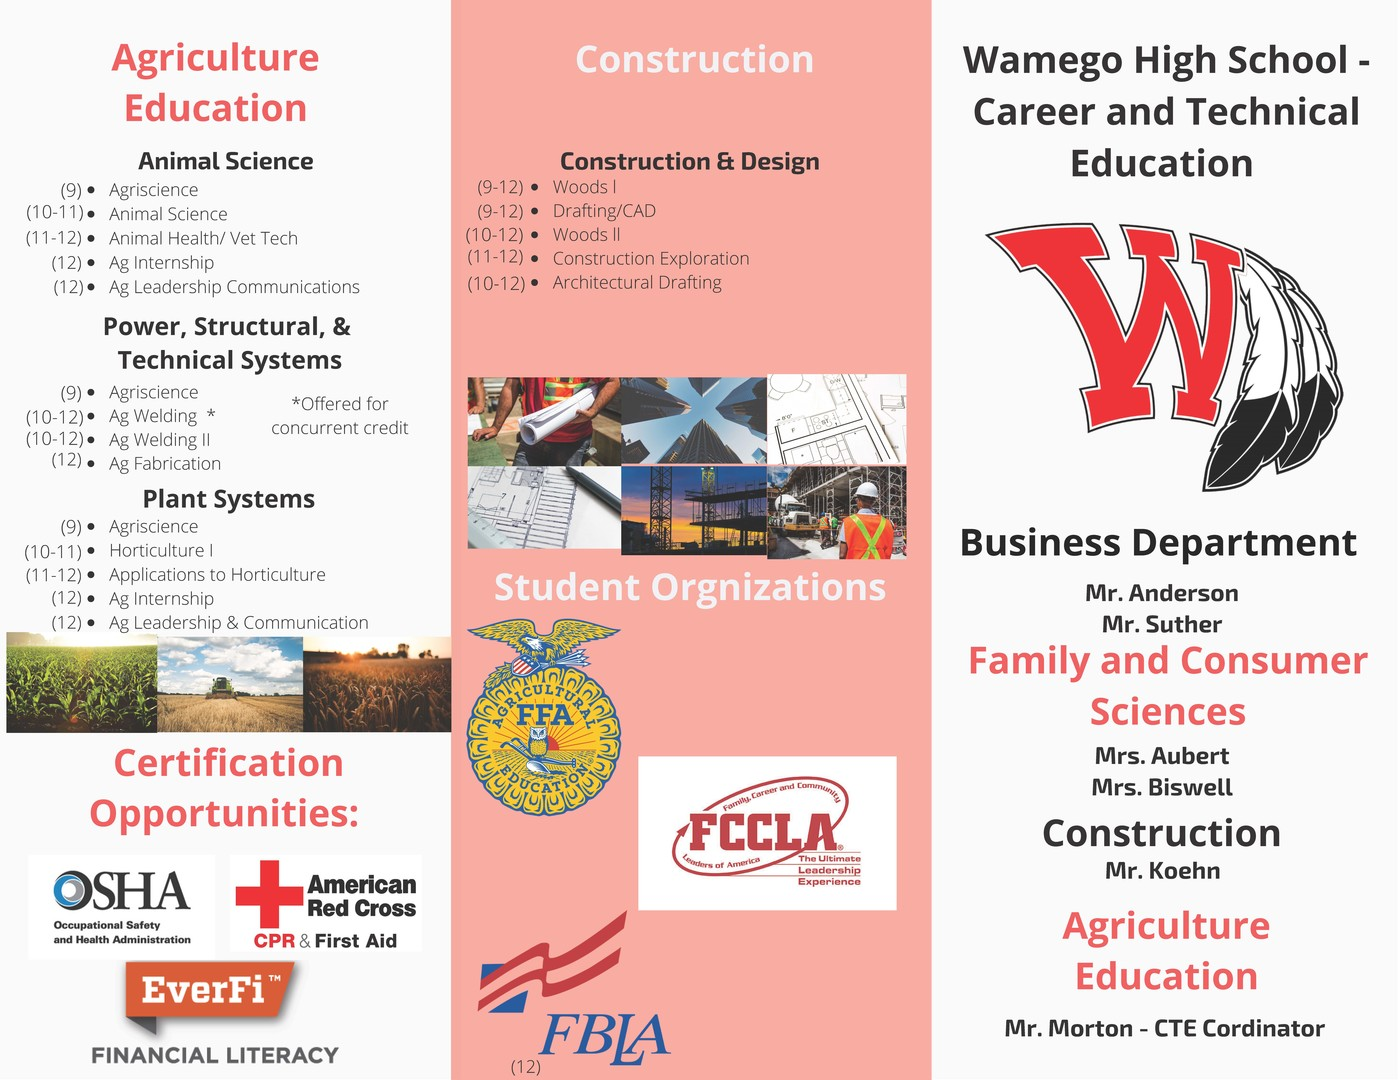 Career and Technical Education Brochure